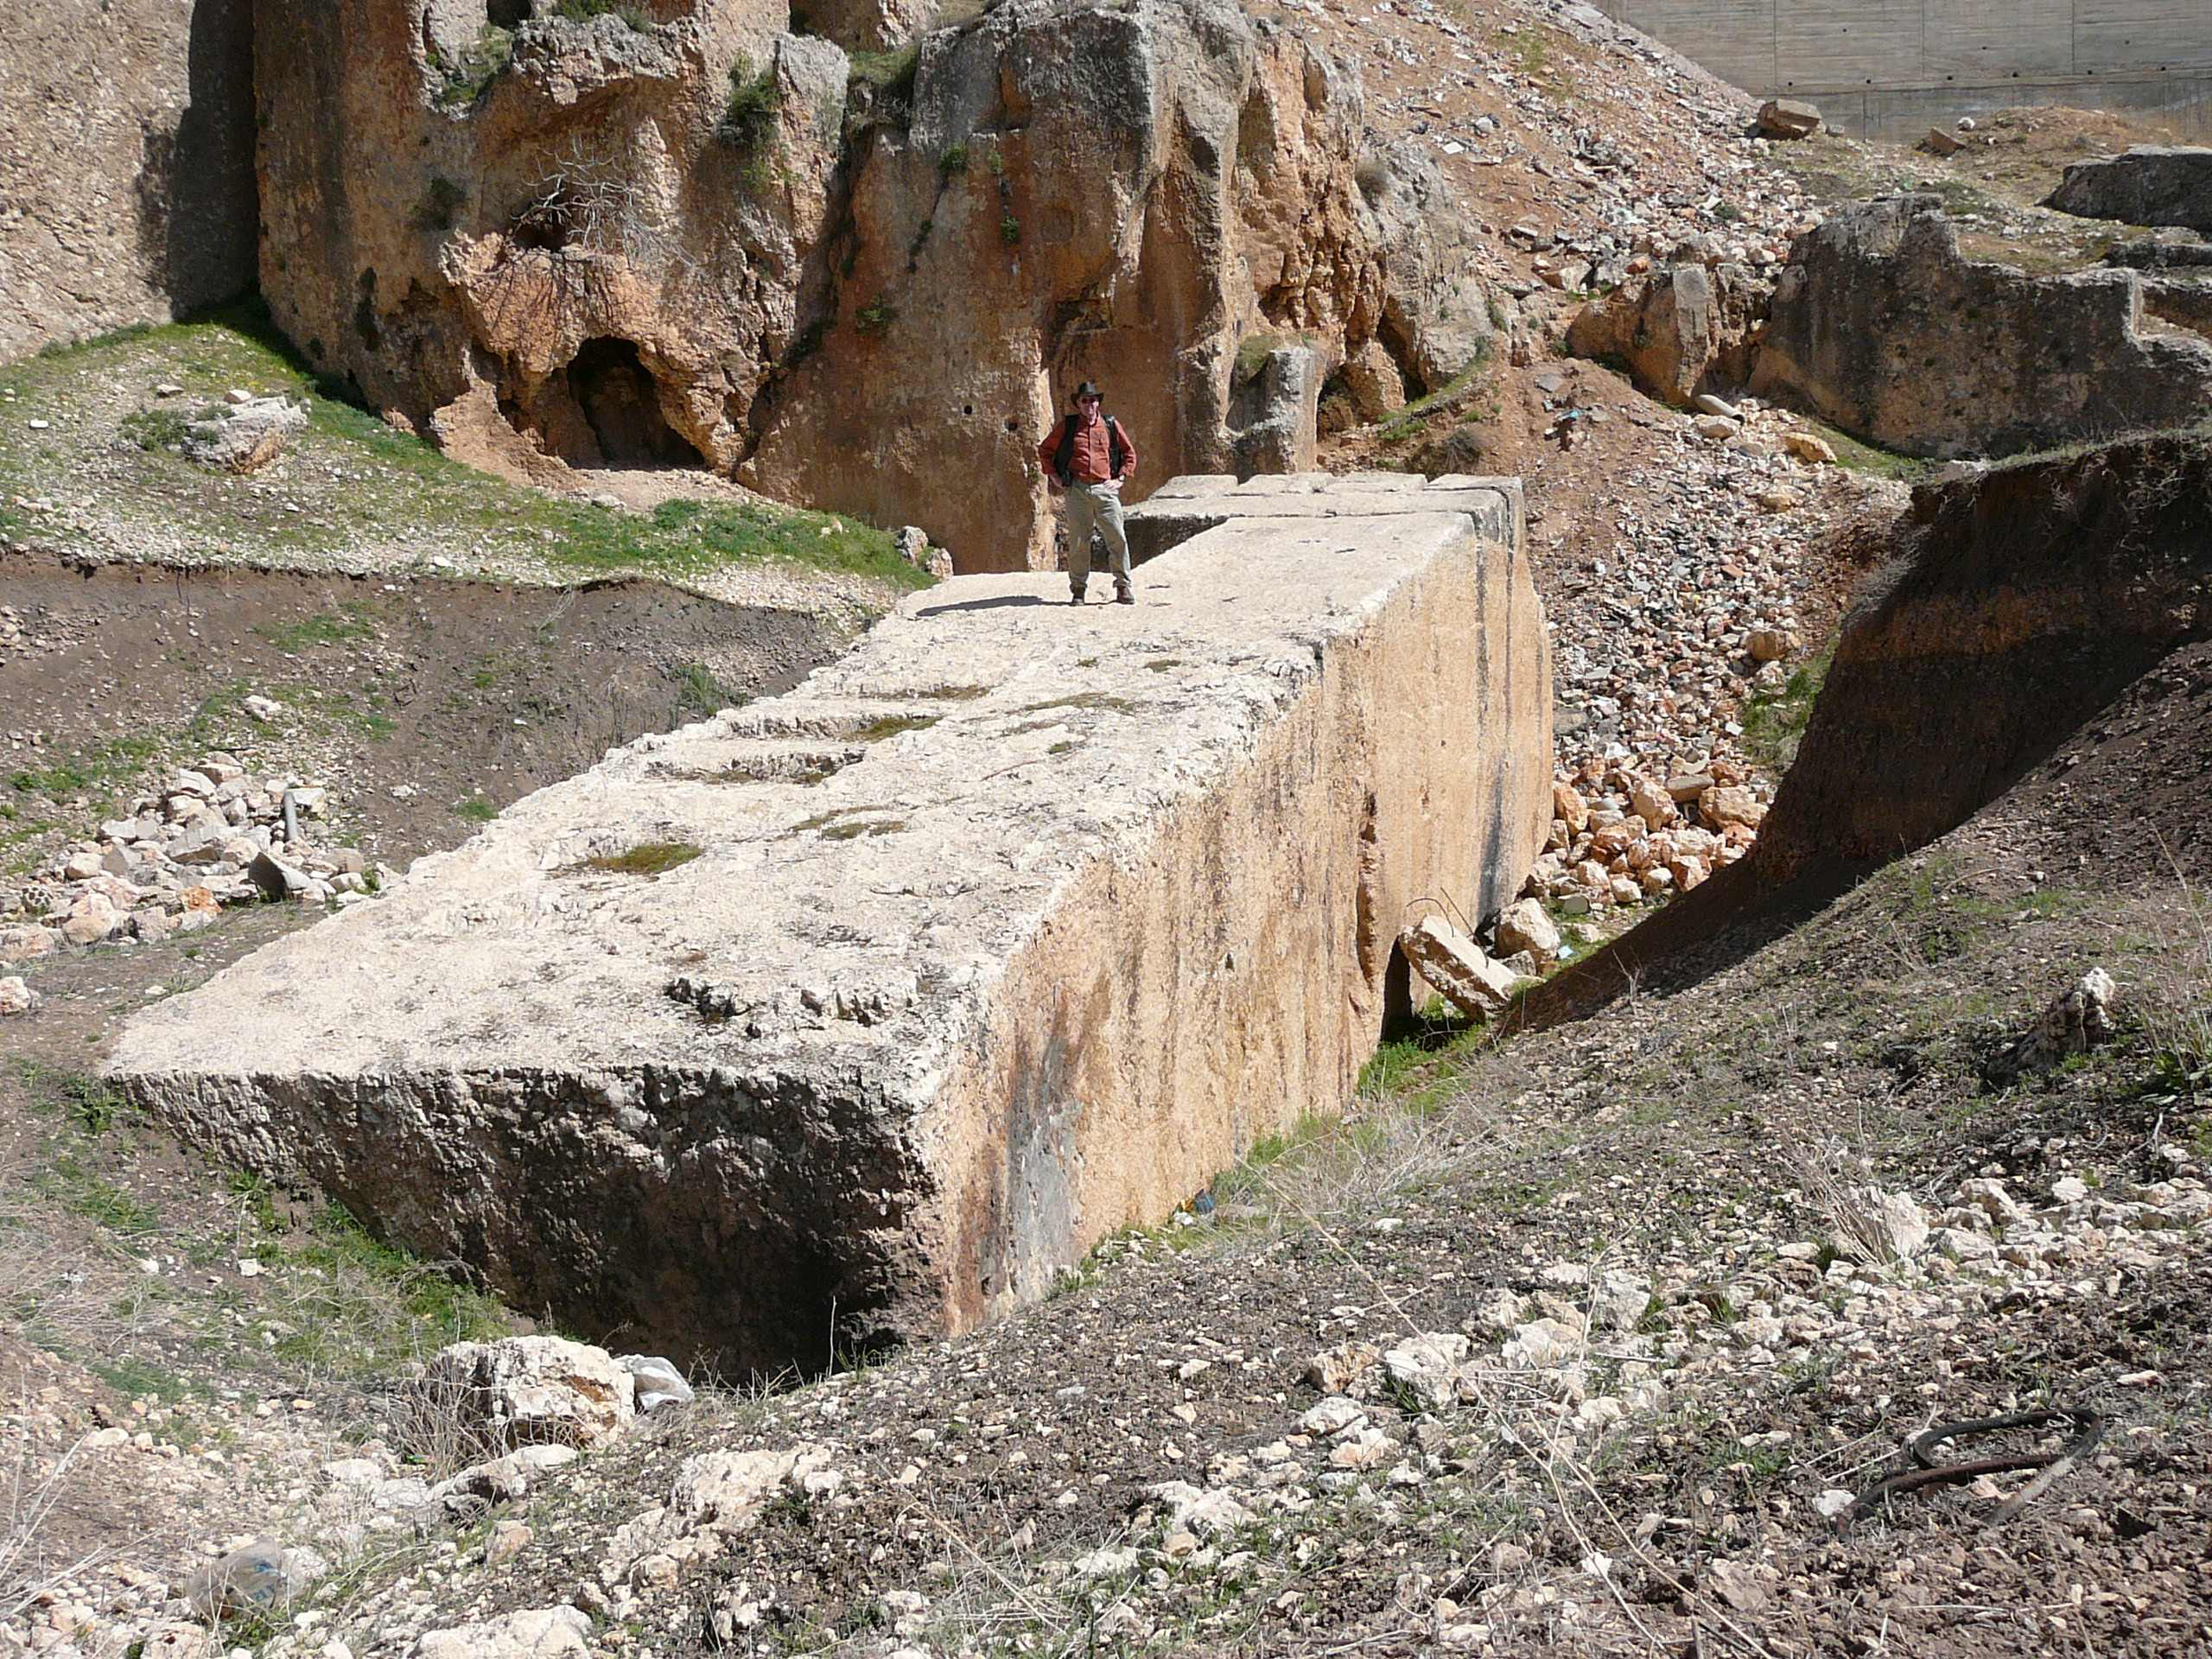 http://upload.wikimedia.org/wikipedia/commons/5/57/Baalbek-_largest_stone.jpg